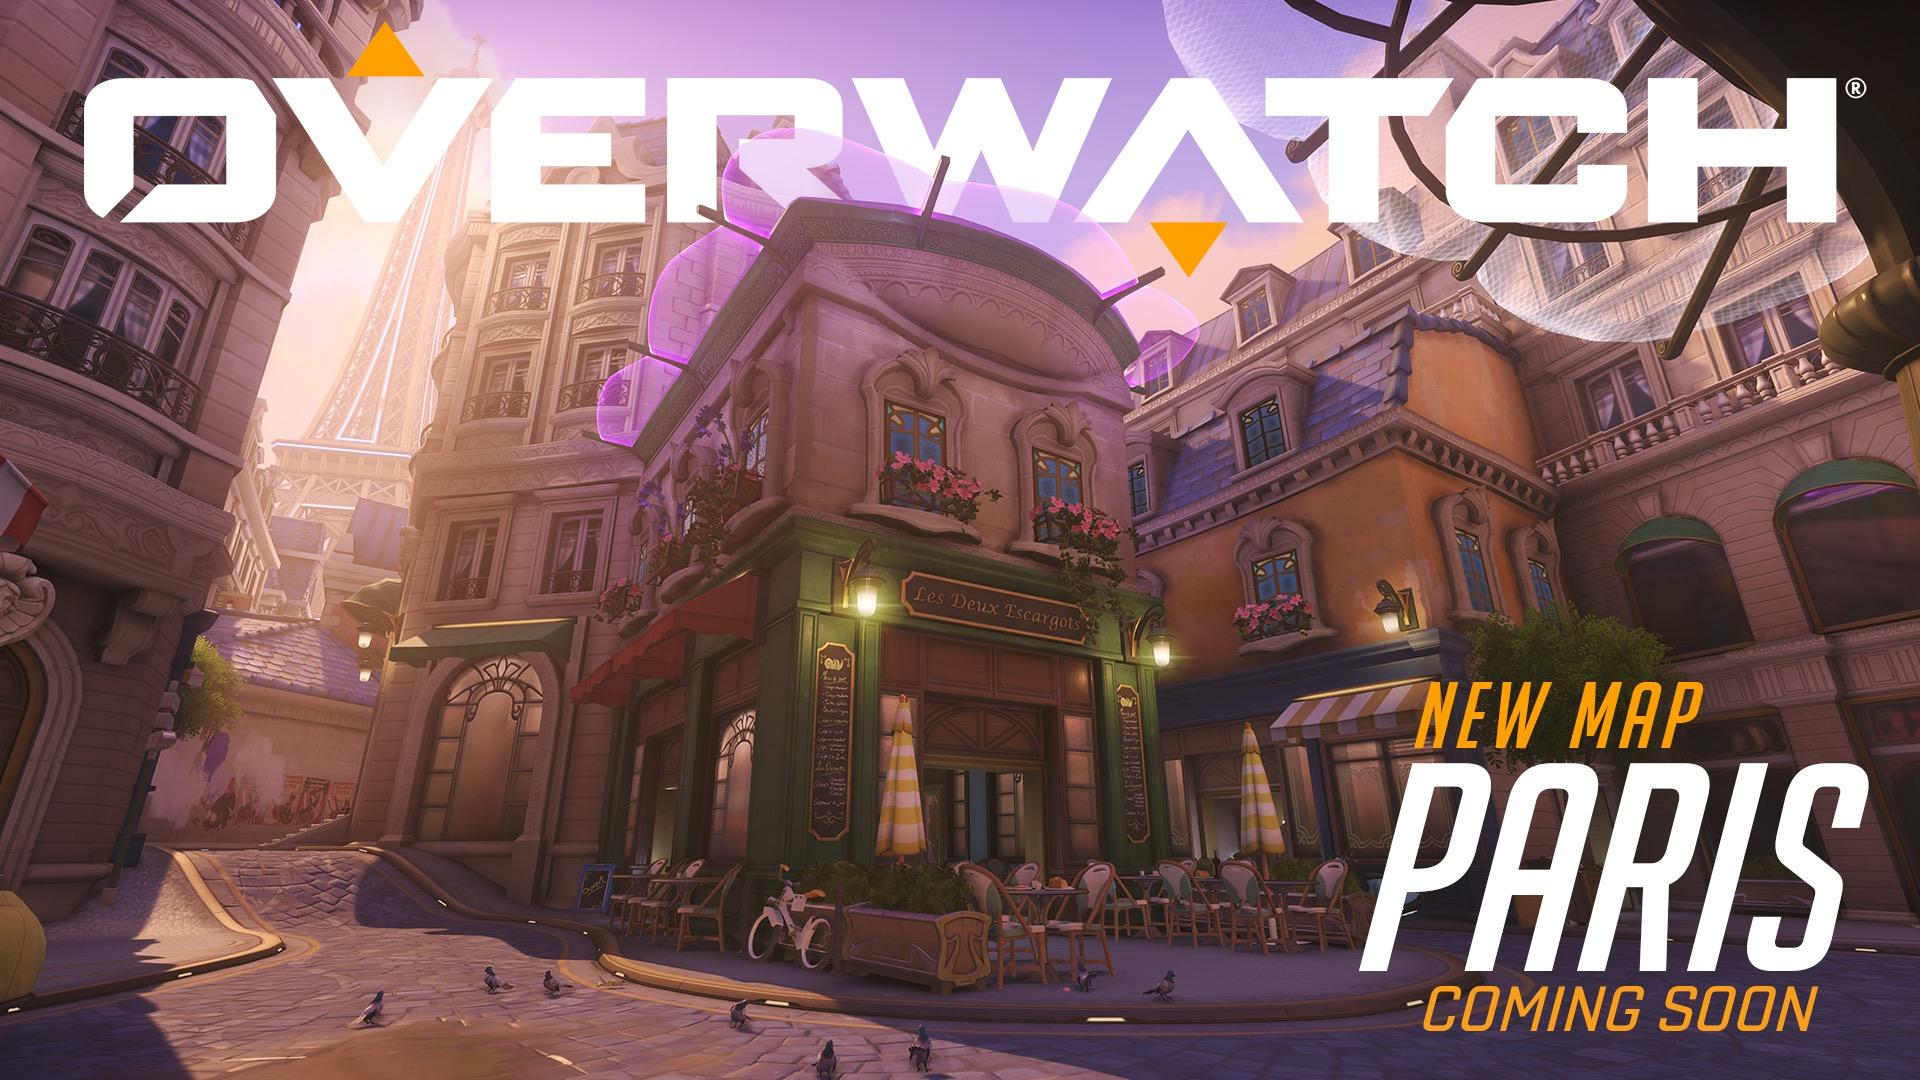 Overwatch says bienvenue to Paris with a new map